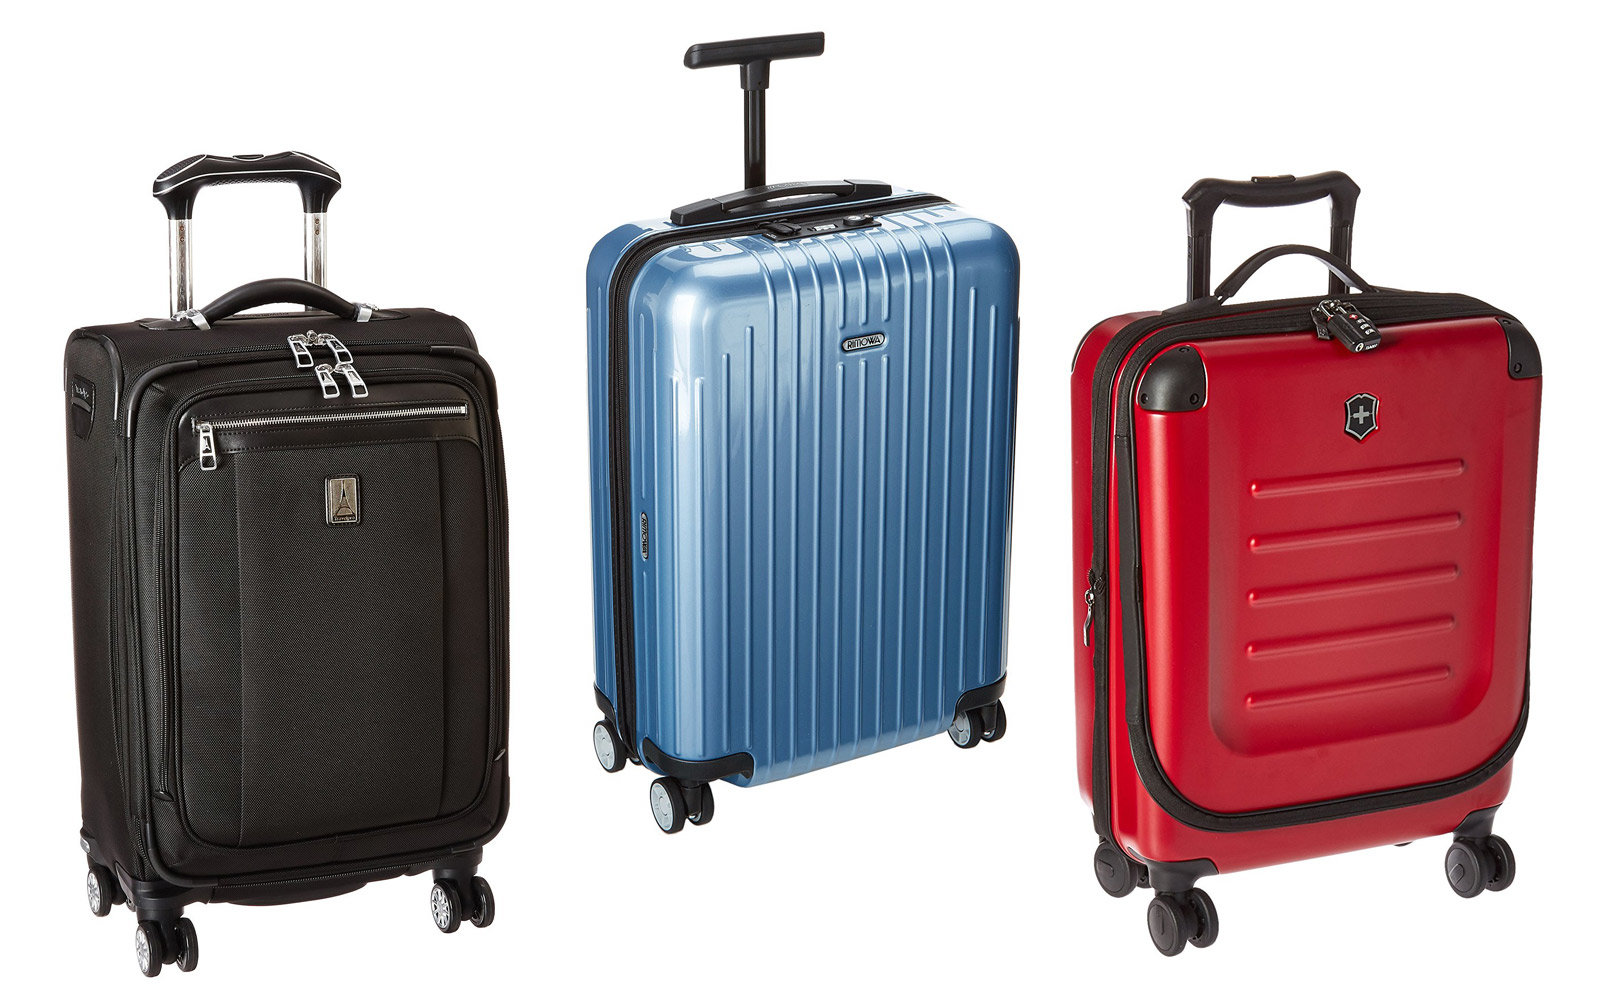 The Best Carry-on Luggage | Travel + Leisure